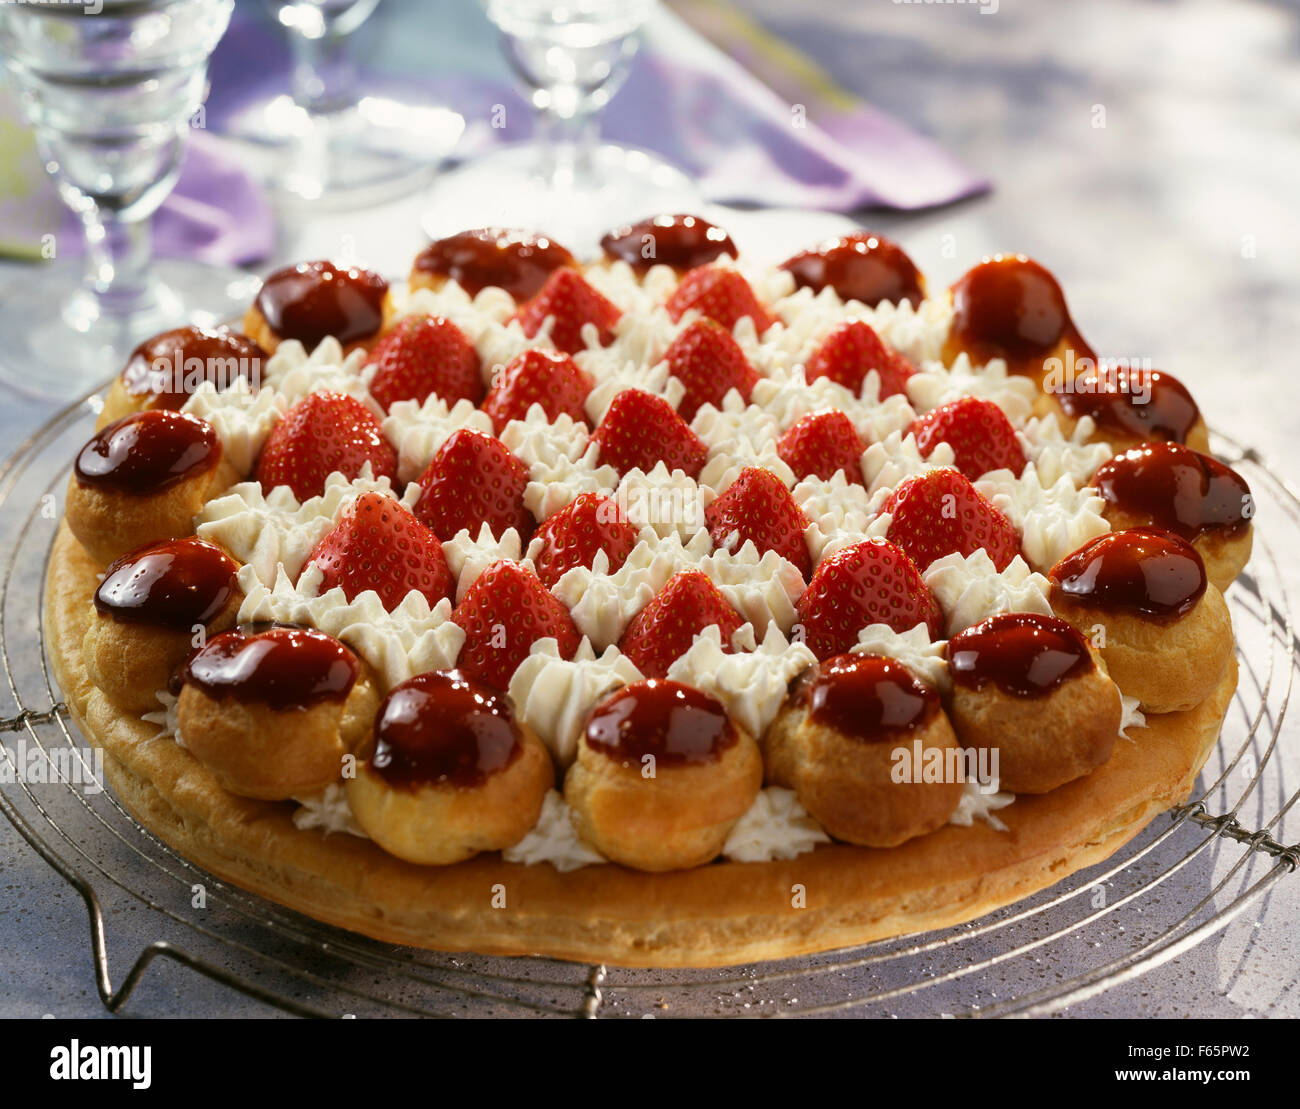 Saint Honore Strawberry Cake Dessert Stock Image